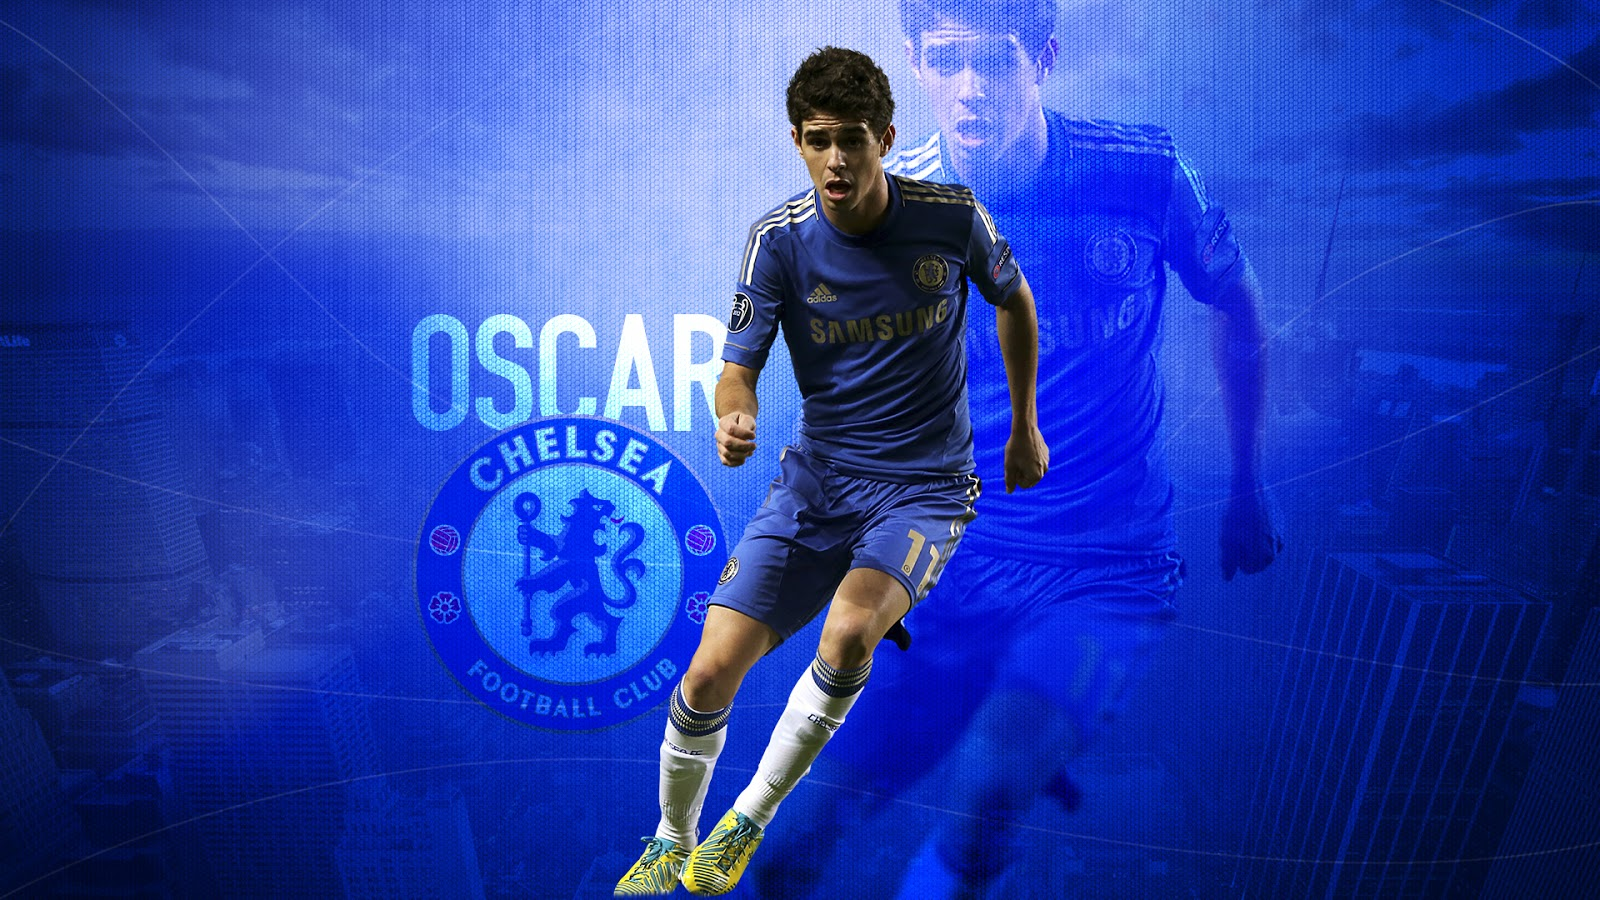 how tall is oscar chelsea